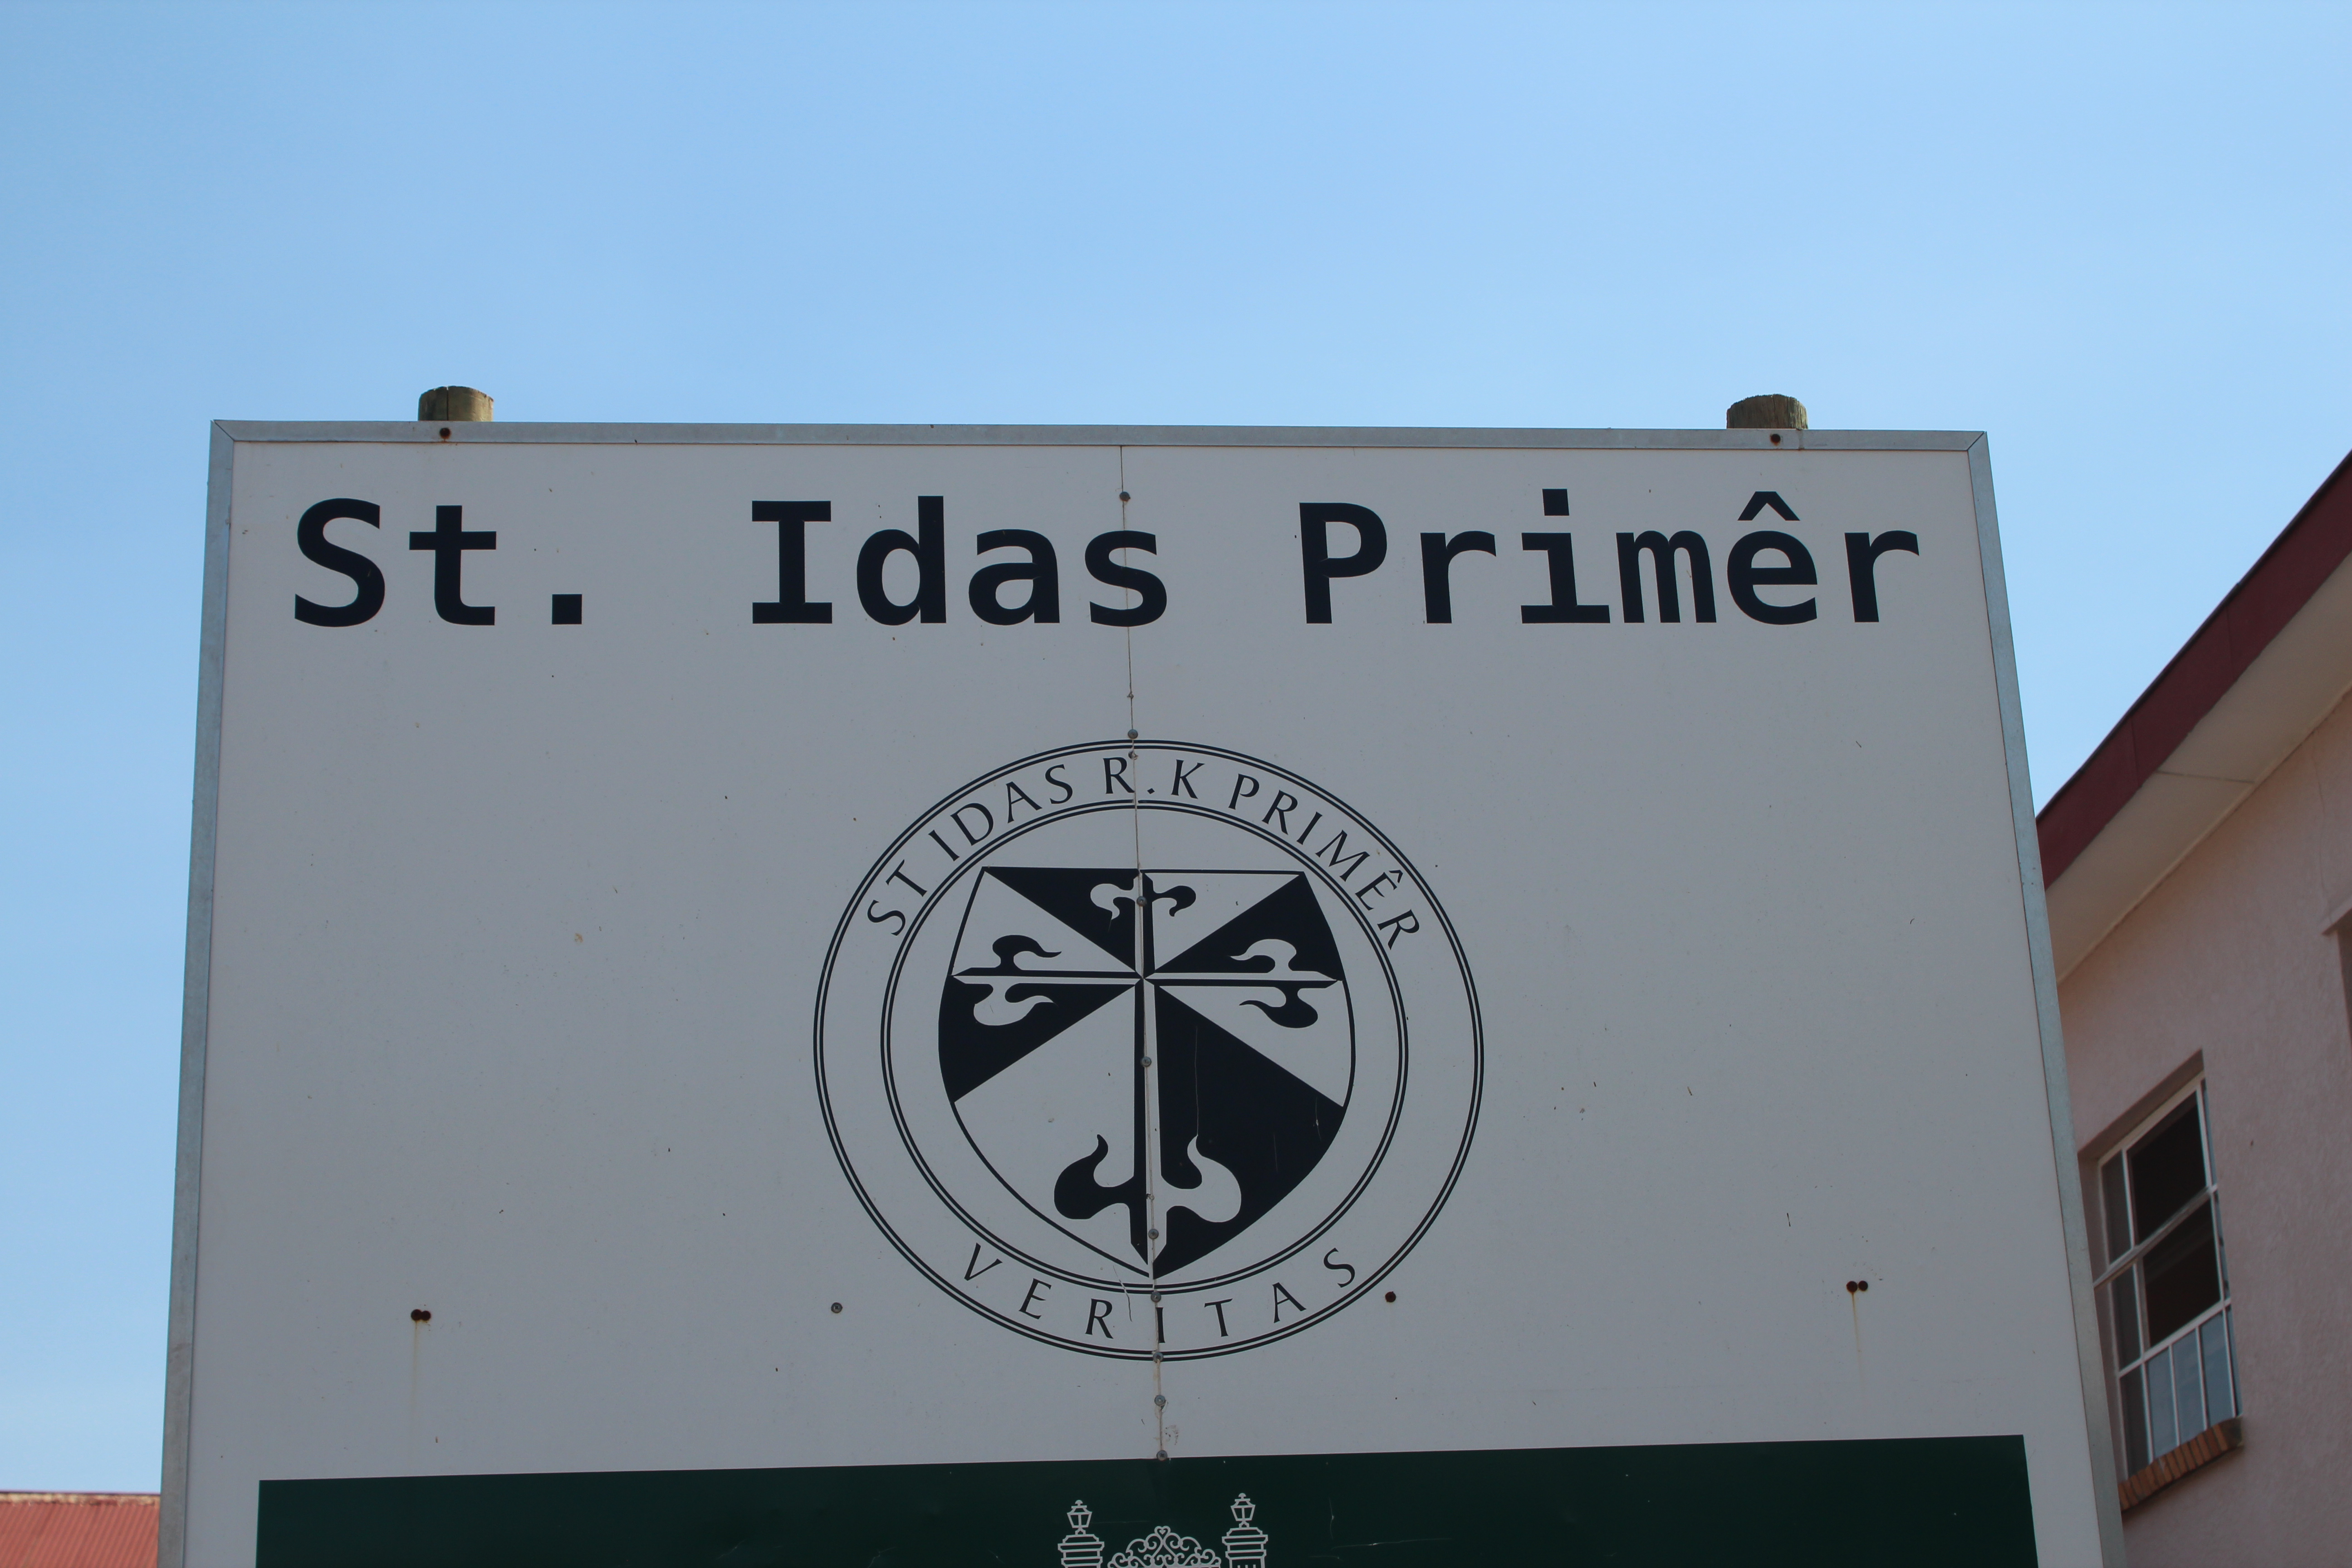 St Ida's RG Primary School